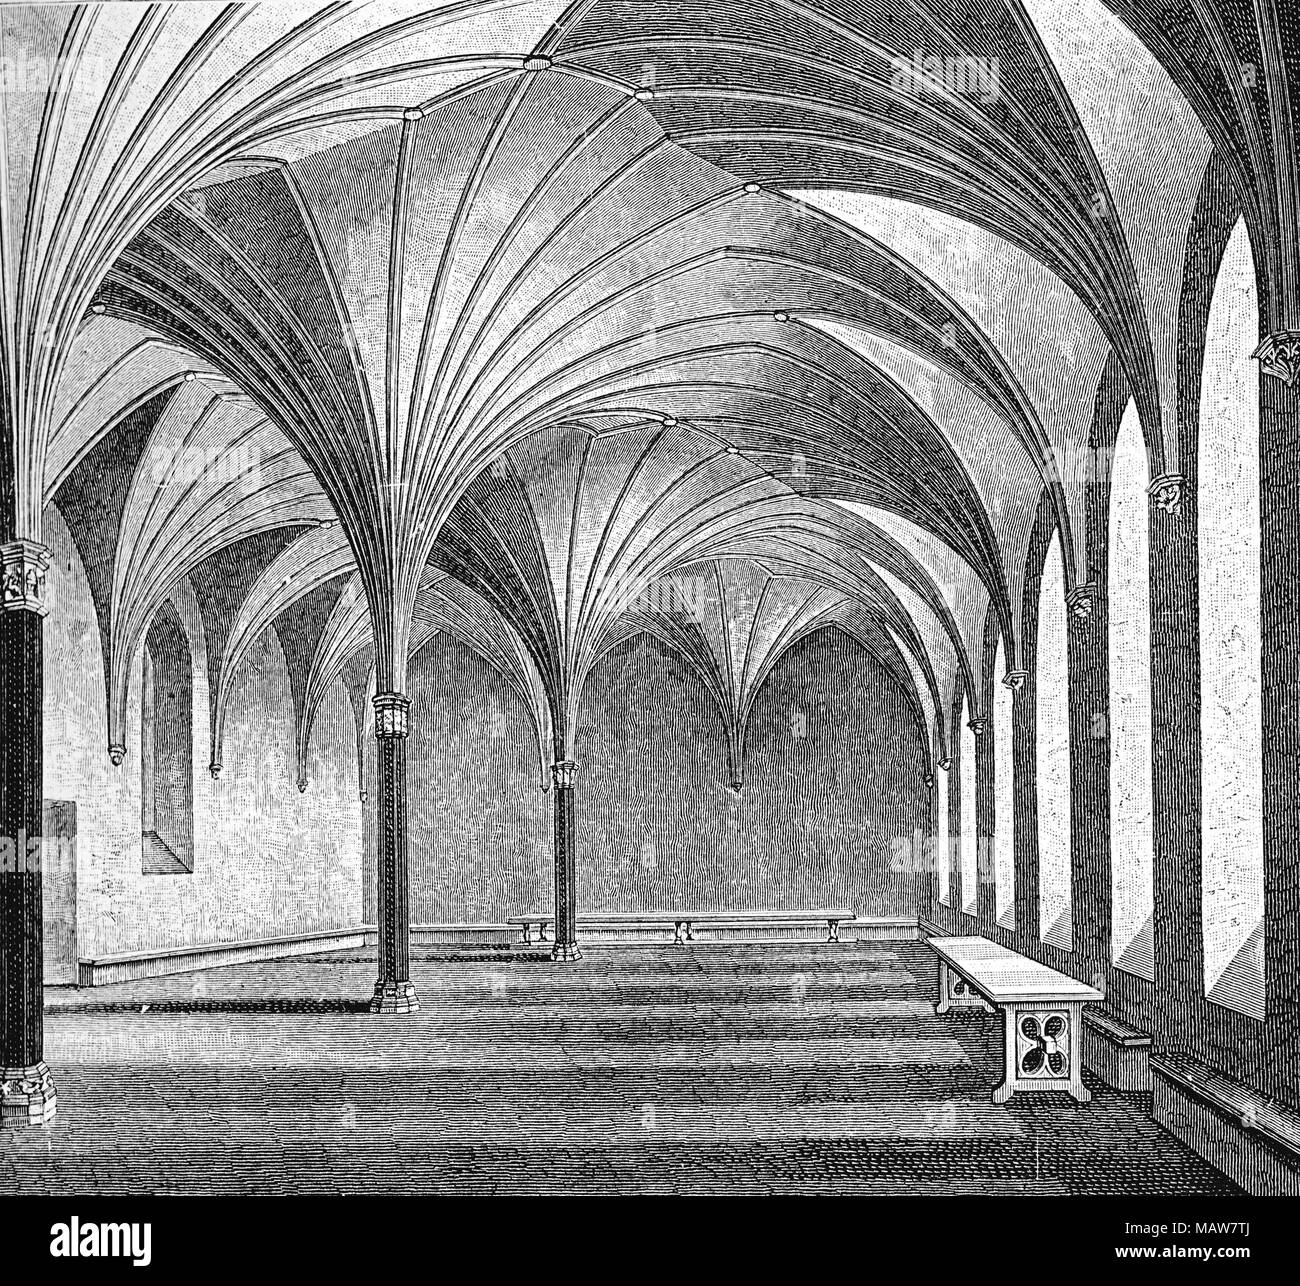 Marienburg - Malbork Castle; large brick castle built by the Teutonic Knights (now Poland): refectory hall; XV century - Stock Image